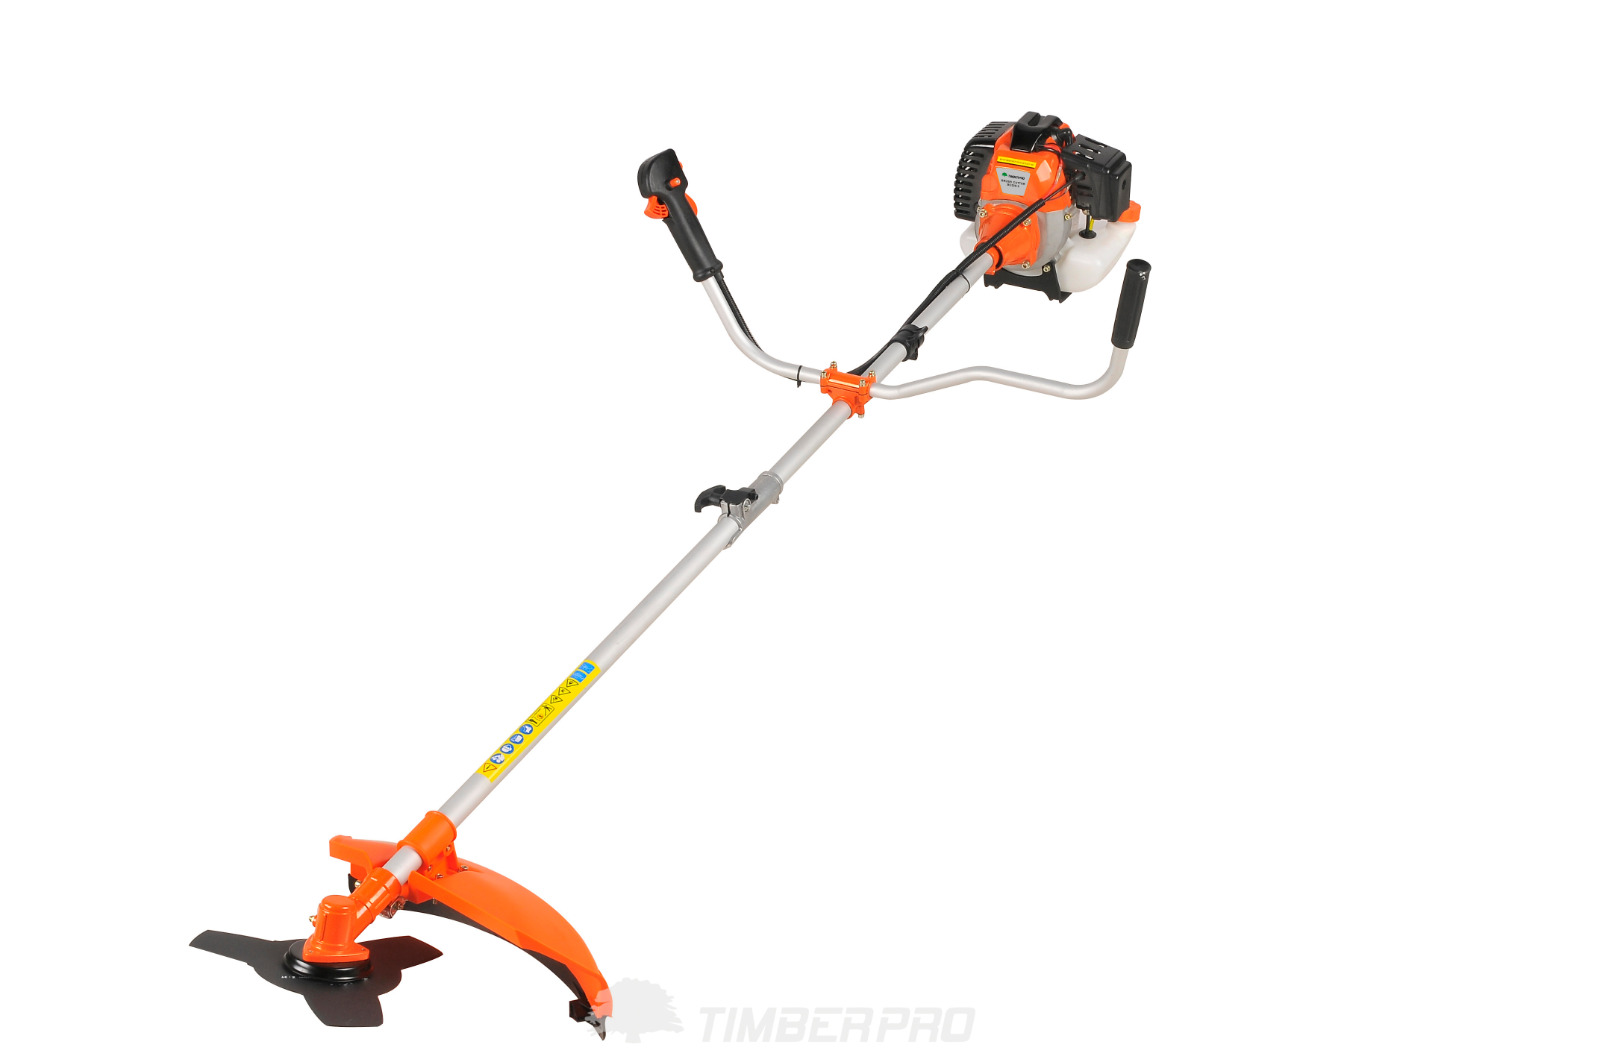 Heavy Duty 52cc Petrol Powered Strimmer Grass Trimmer Brush Cutter Amp 3 Blades